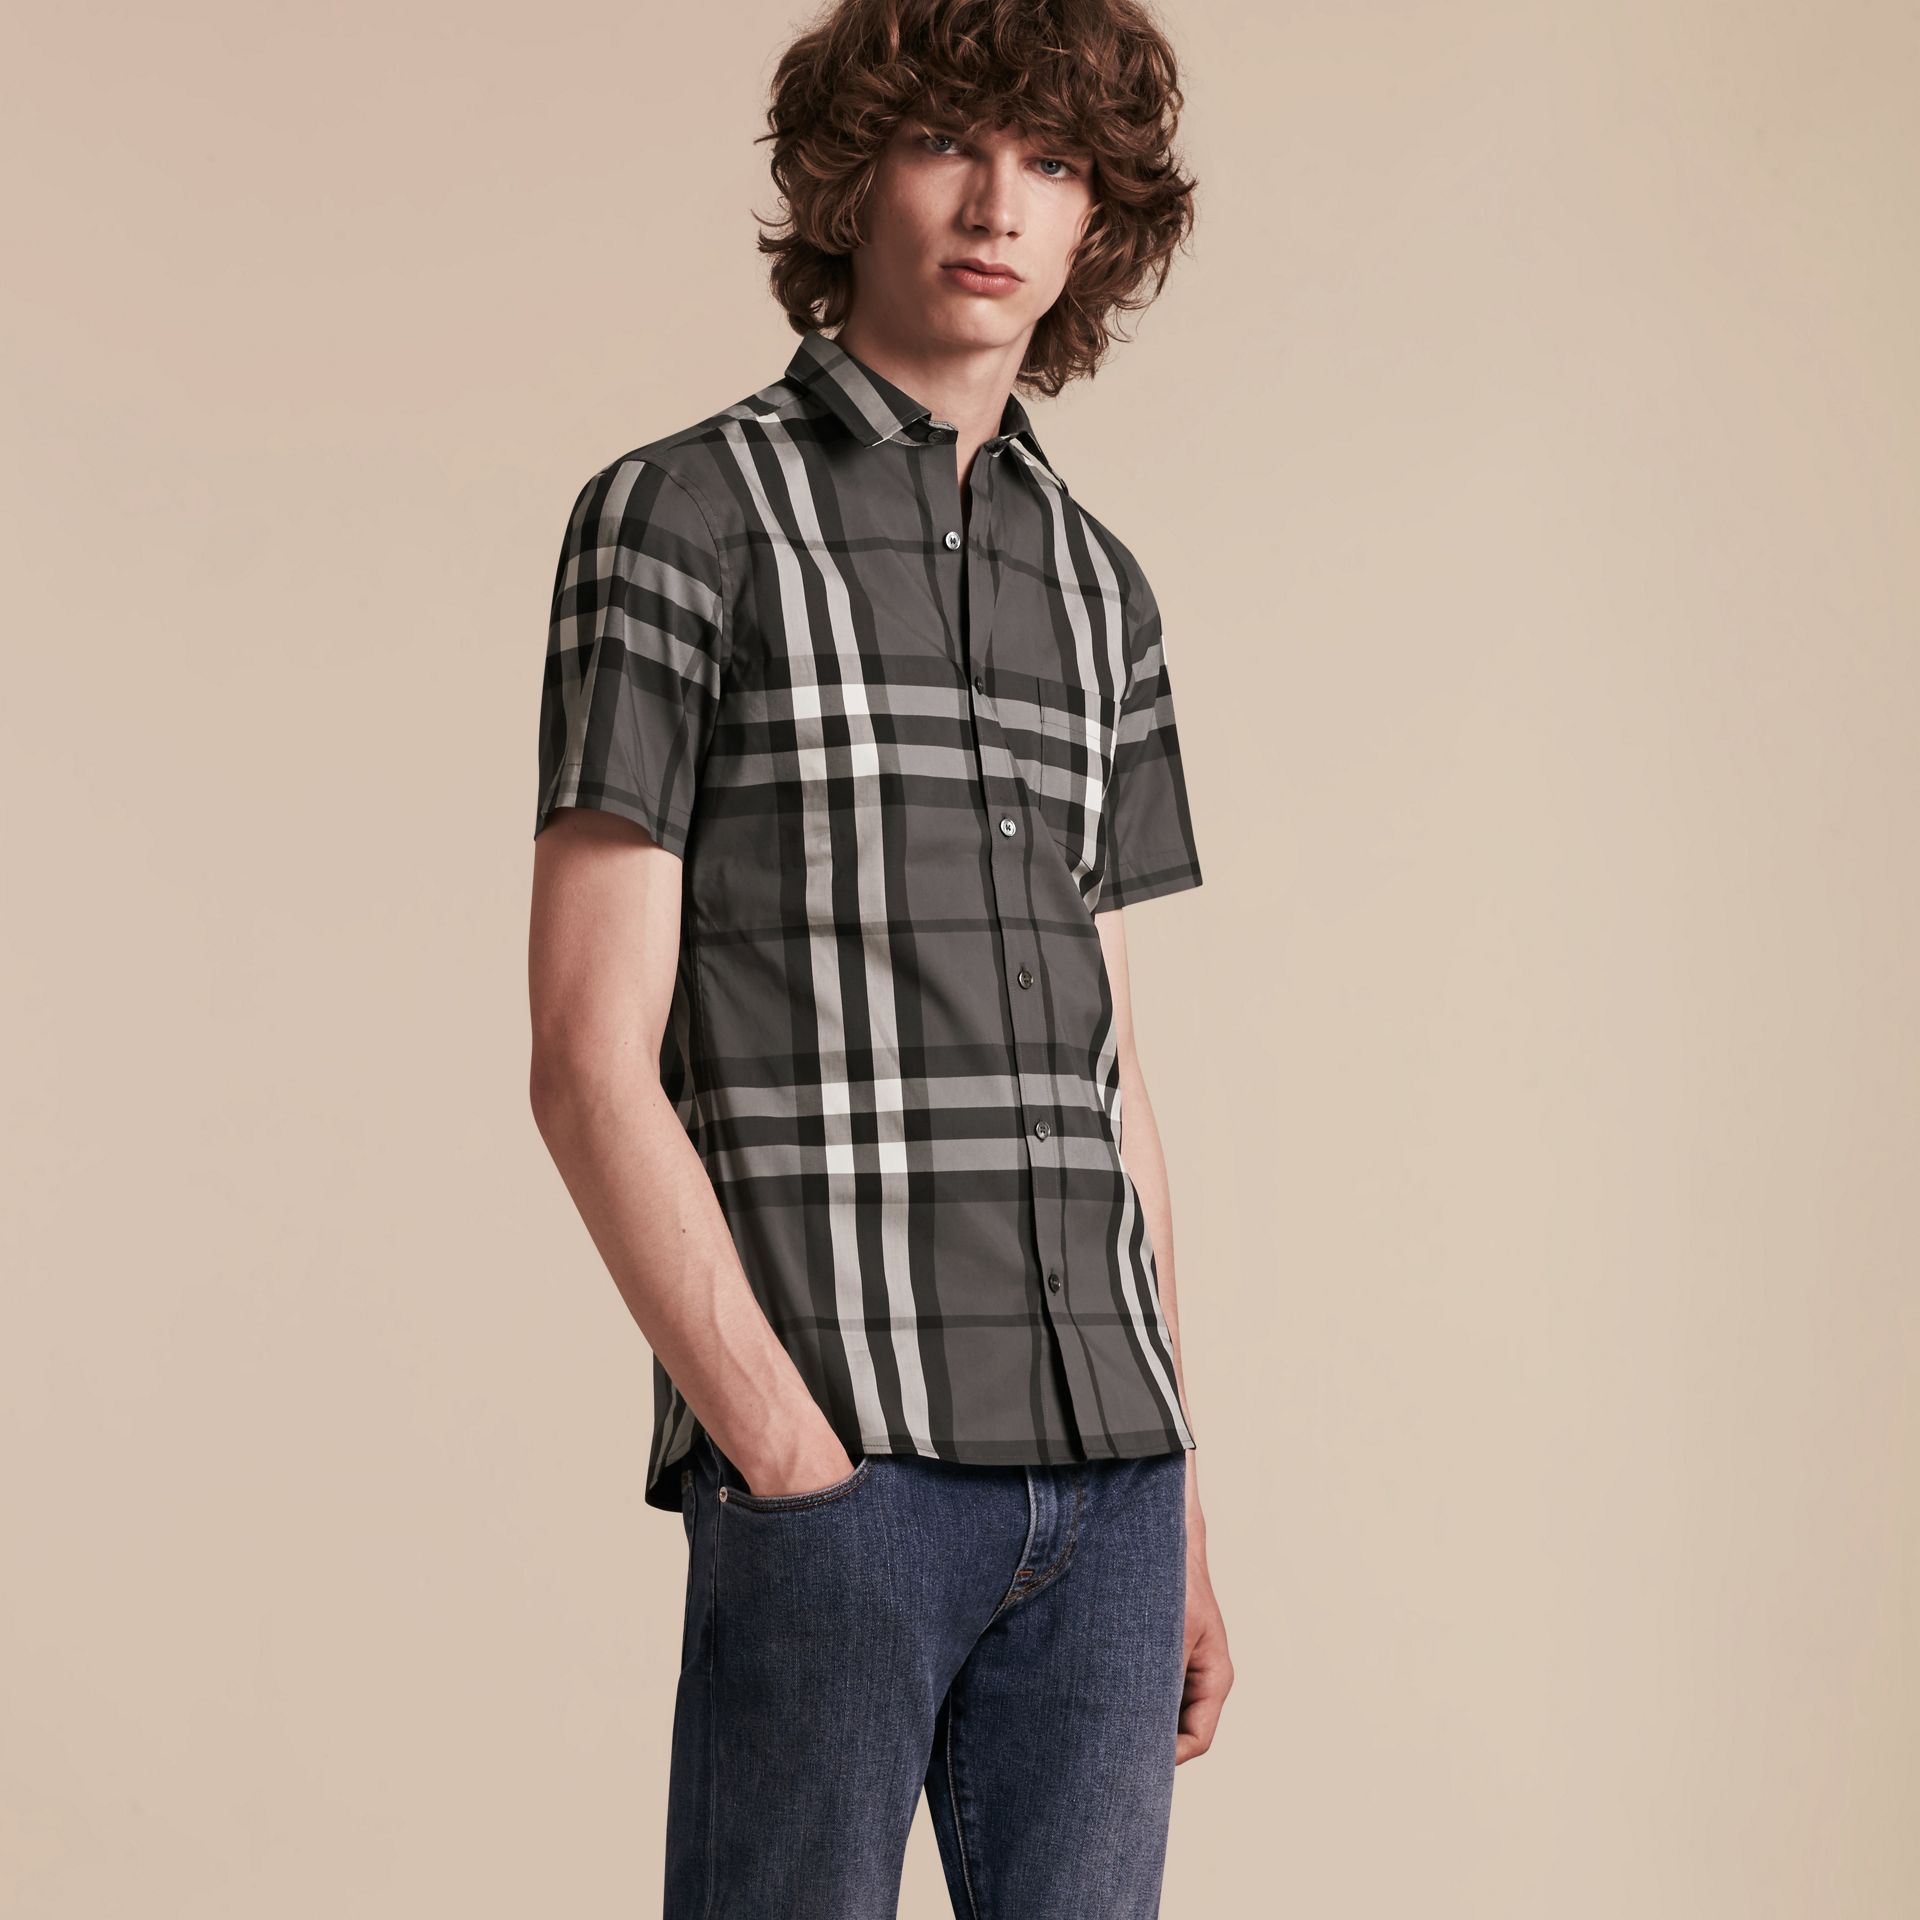 Short-sleeved Check Stretch Cotton Shirt in Charcoal - Men | Burberry - gallery image 6